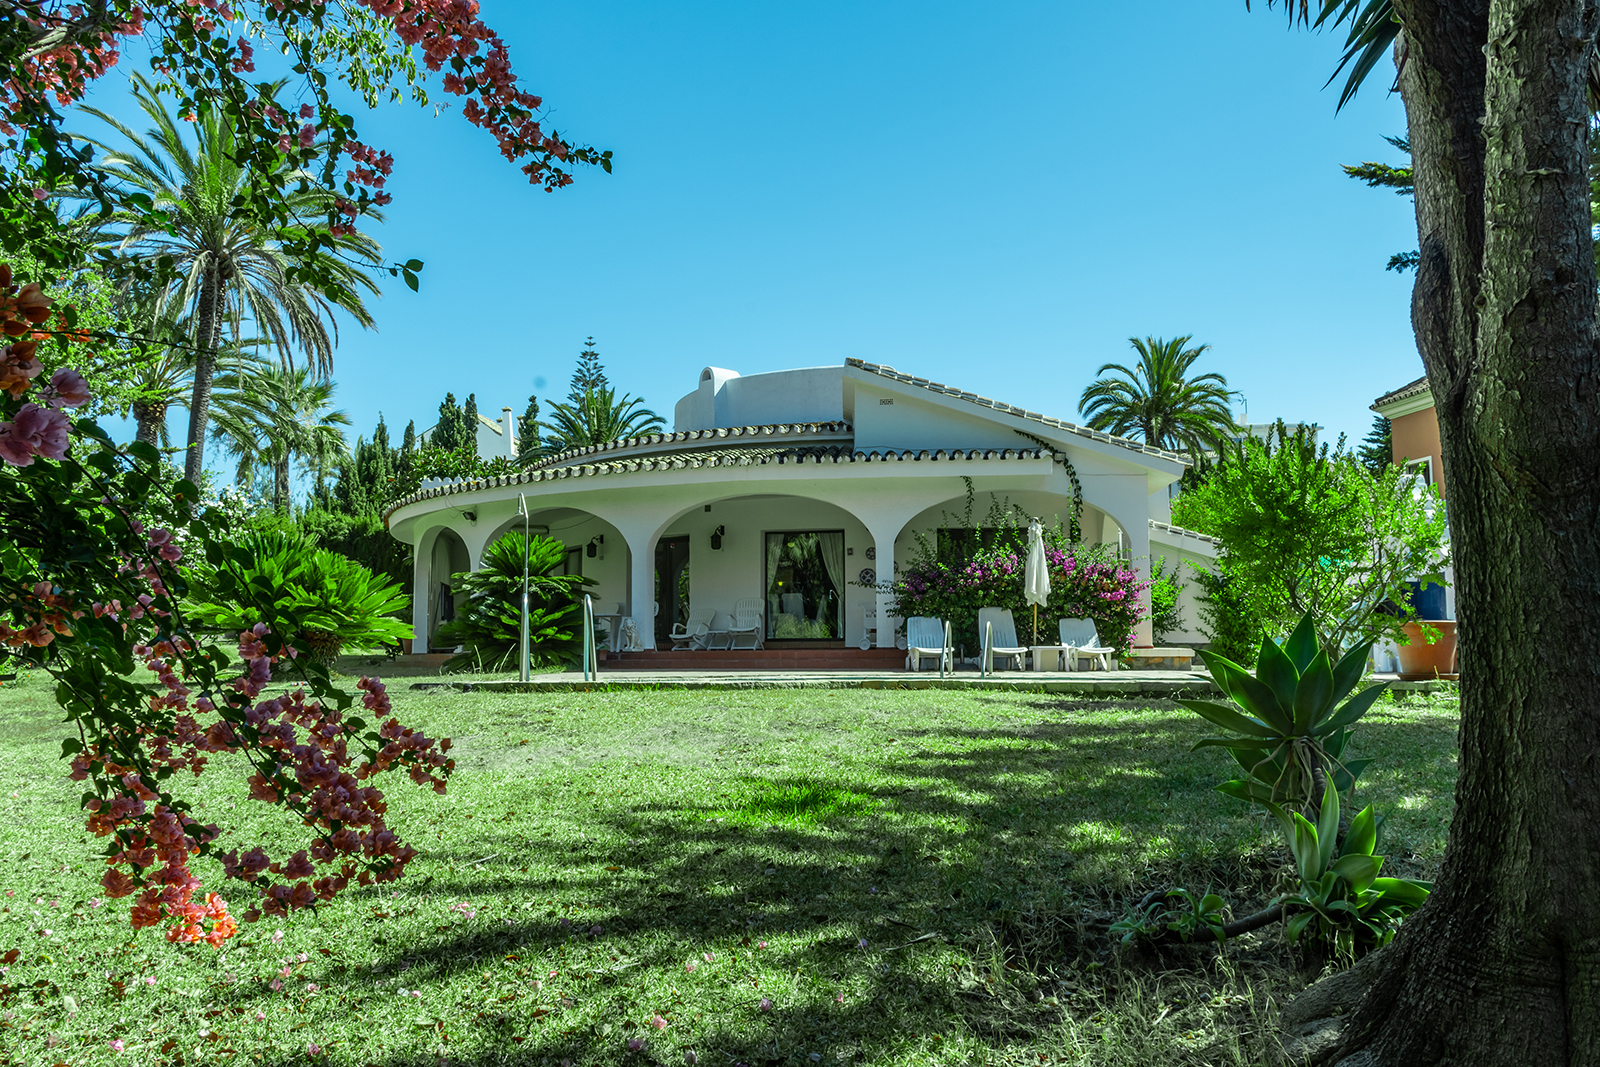 Fantastic Villa in Unbeatable Location 100 m. From One of the Best Beaches in Marbella